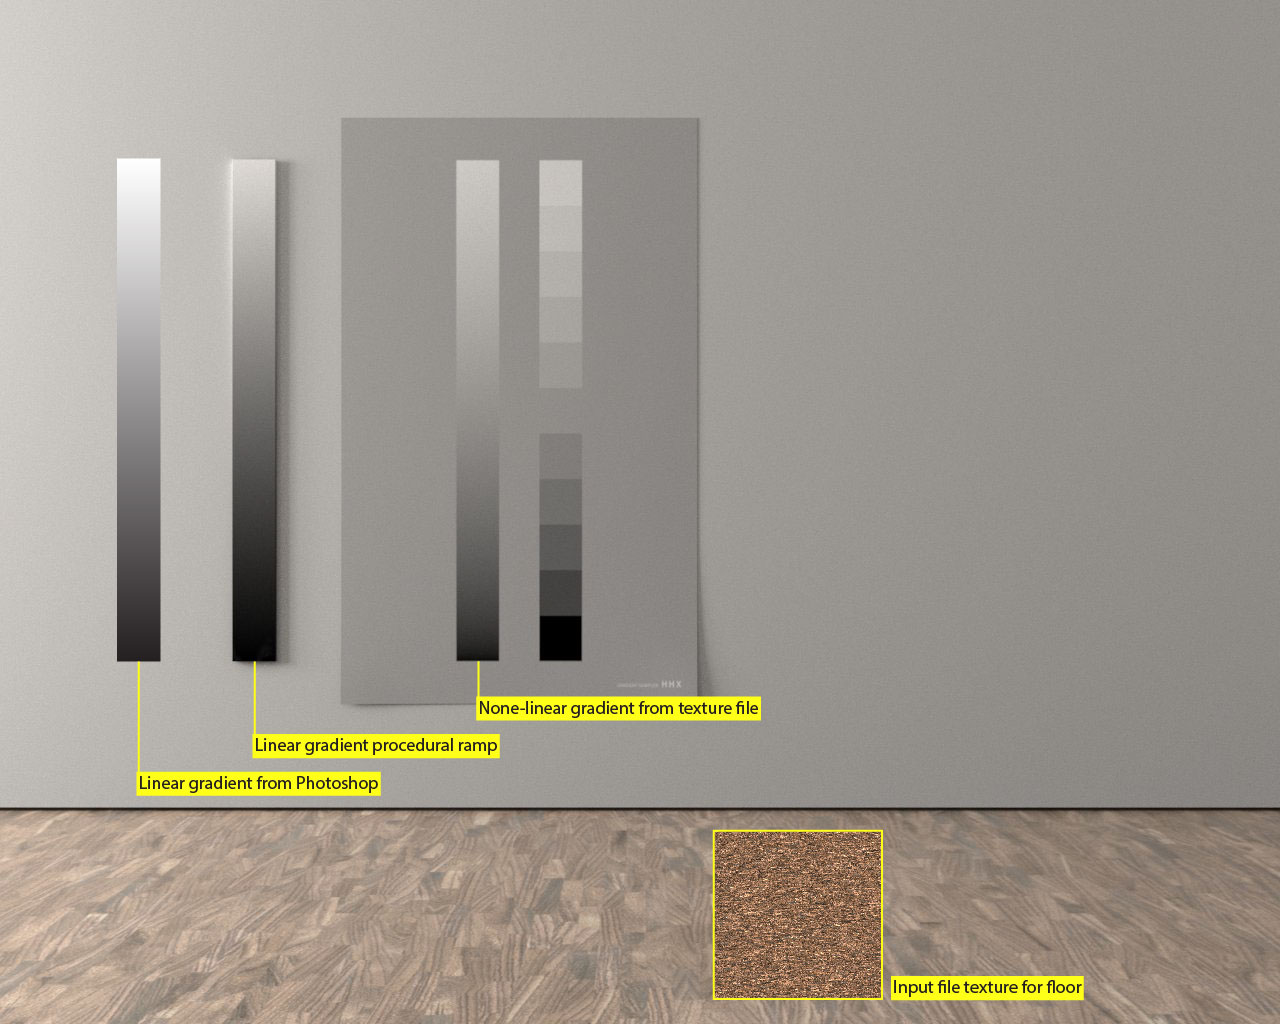 007 vray for maya linear workflow guide hanhanxue